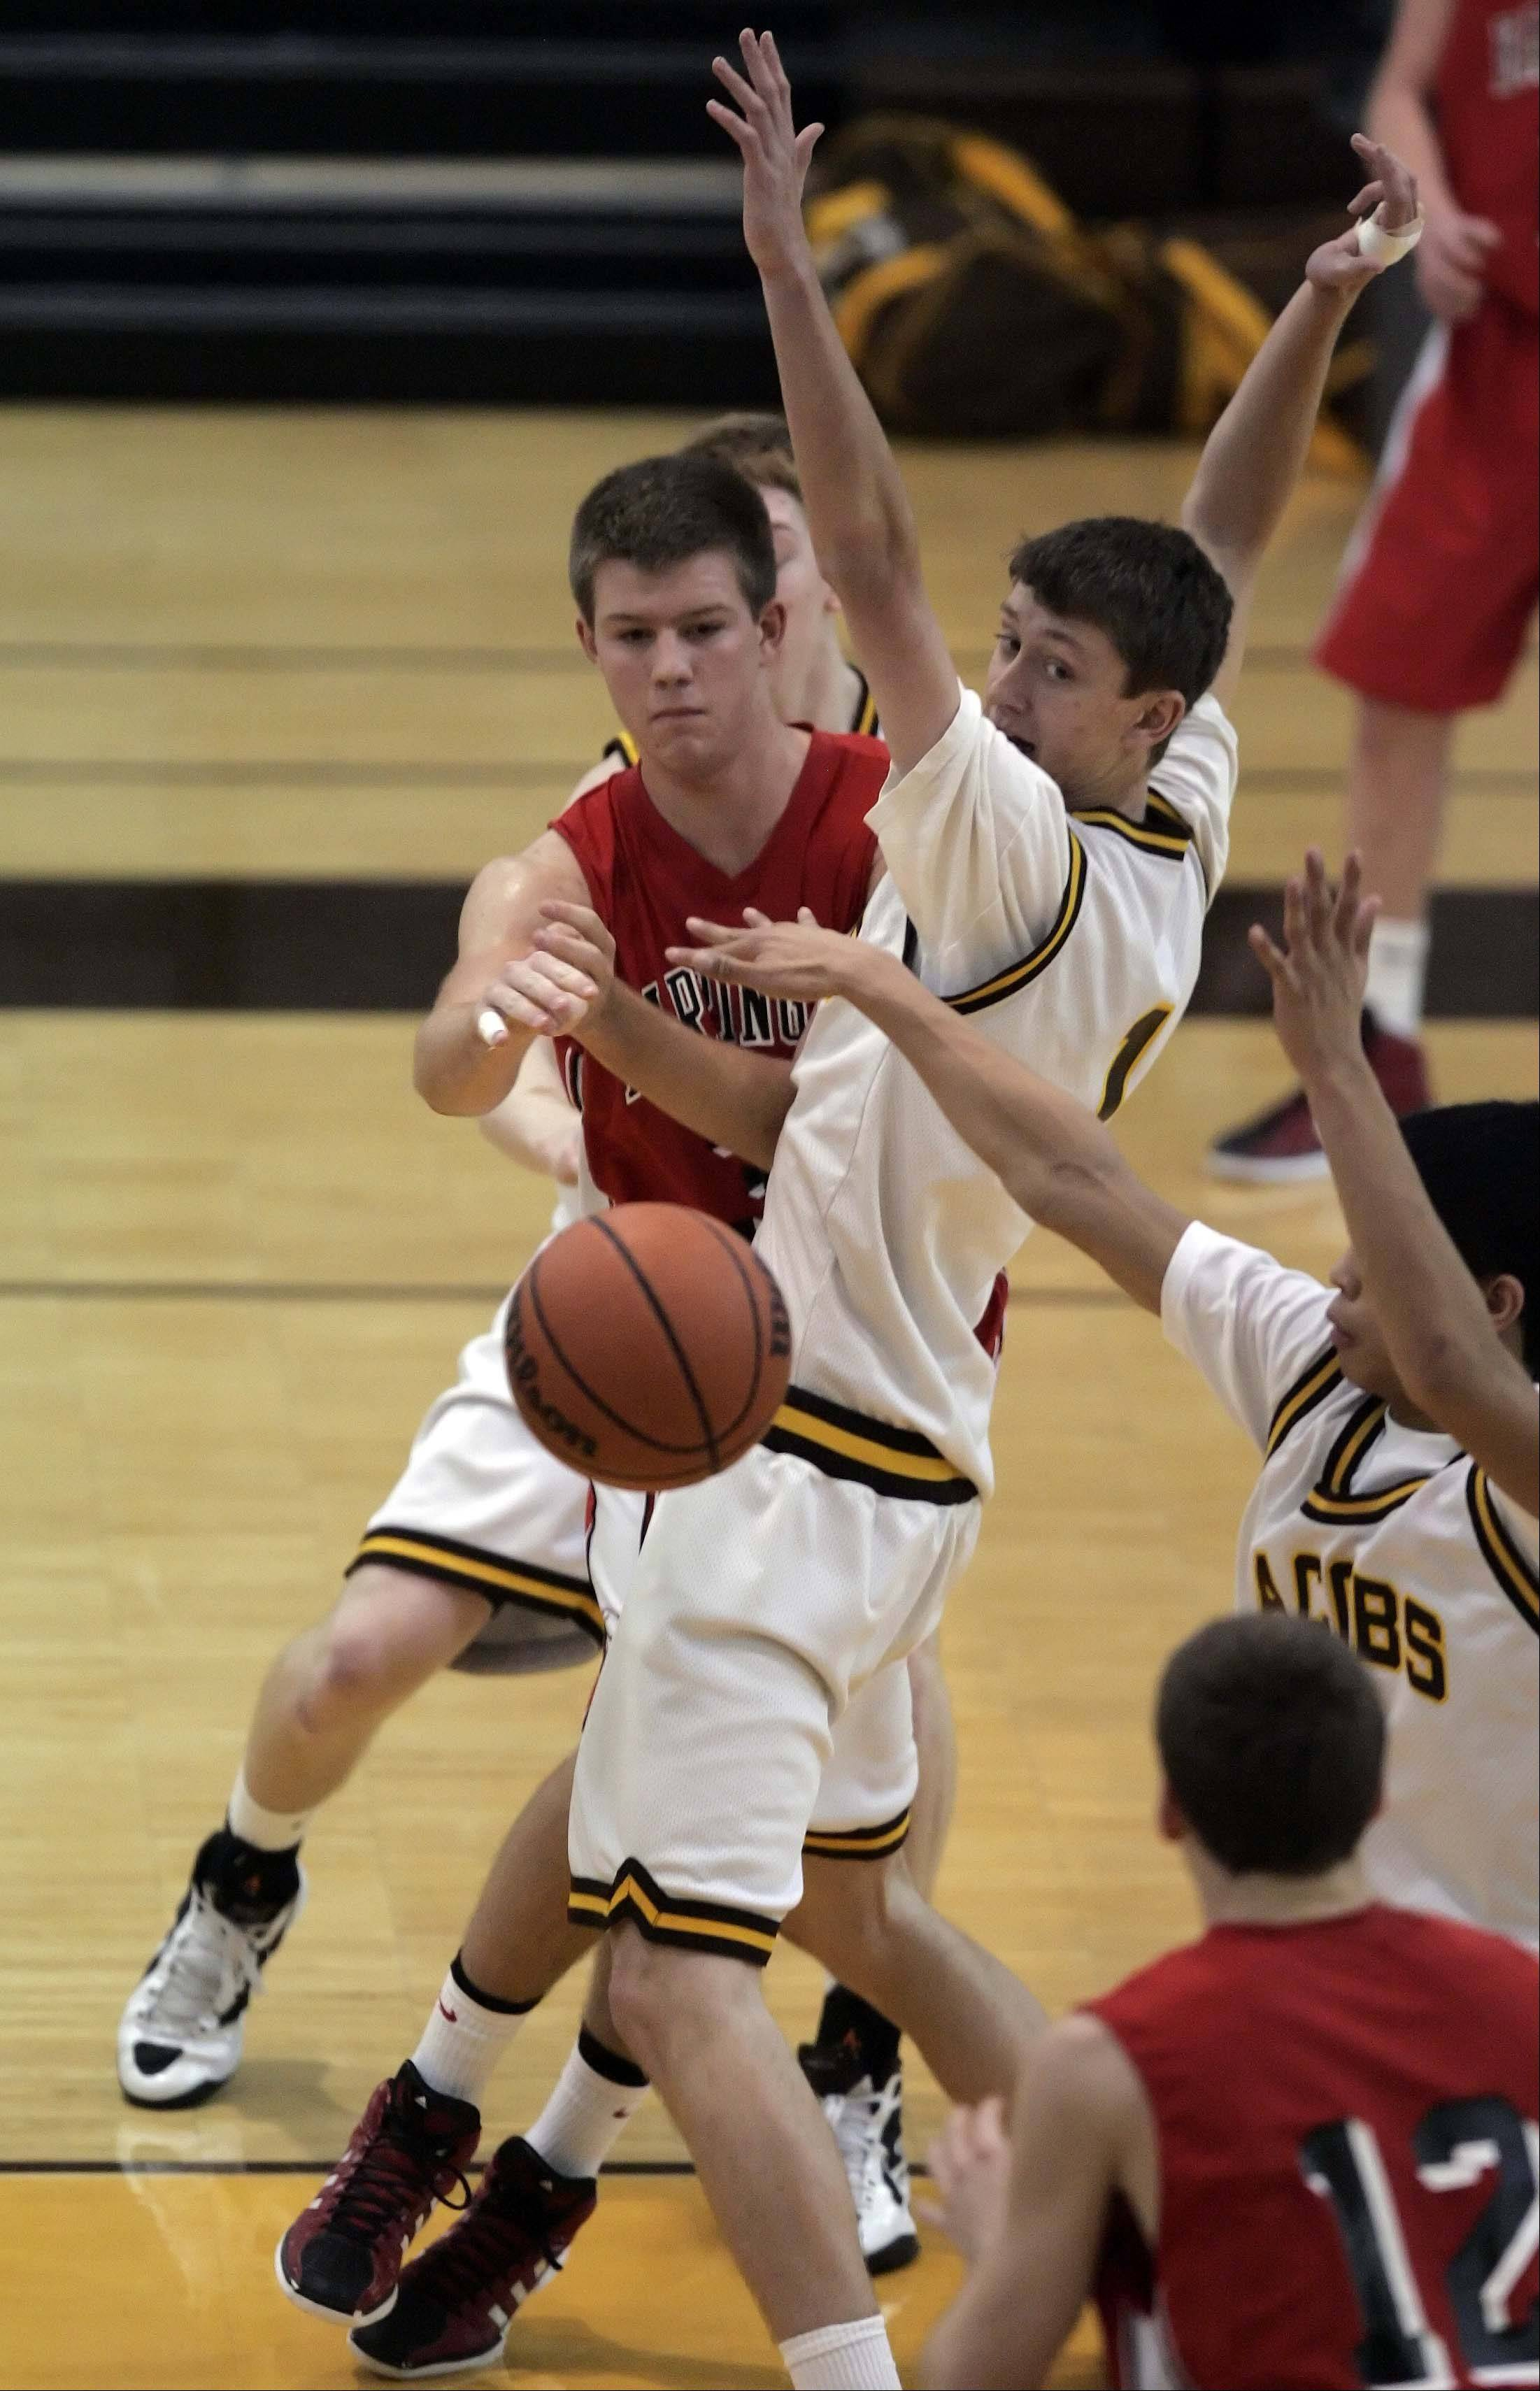 Barrington forward Mark Bennett, 33, looks for an opening past Jacobs Nick Lendinsky, 1, during the 2011 Jacobs Boys Holiday Basketball Classic in Algonquin Tuesday.